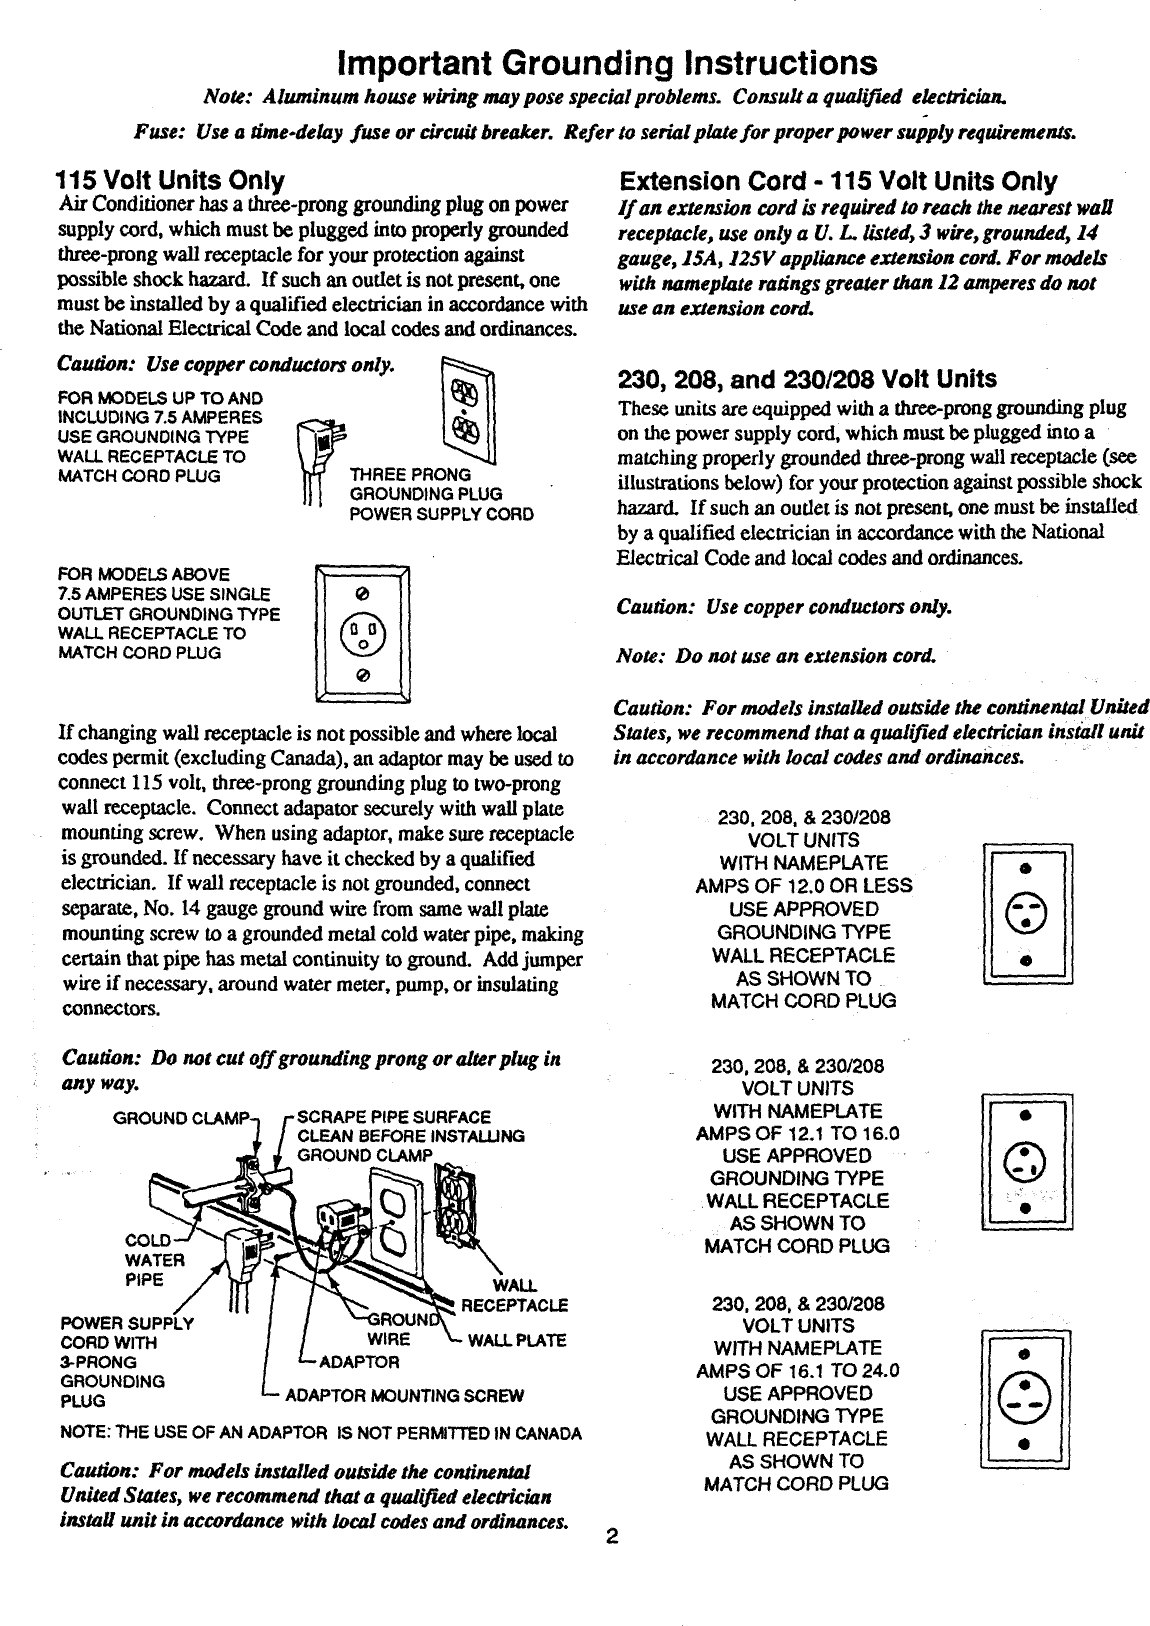 Fedders Air Conditioner Room 42 Manual L0811213 Handler Wiring Diagram Page 2 Of 4